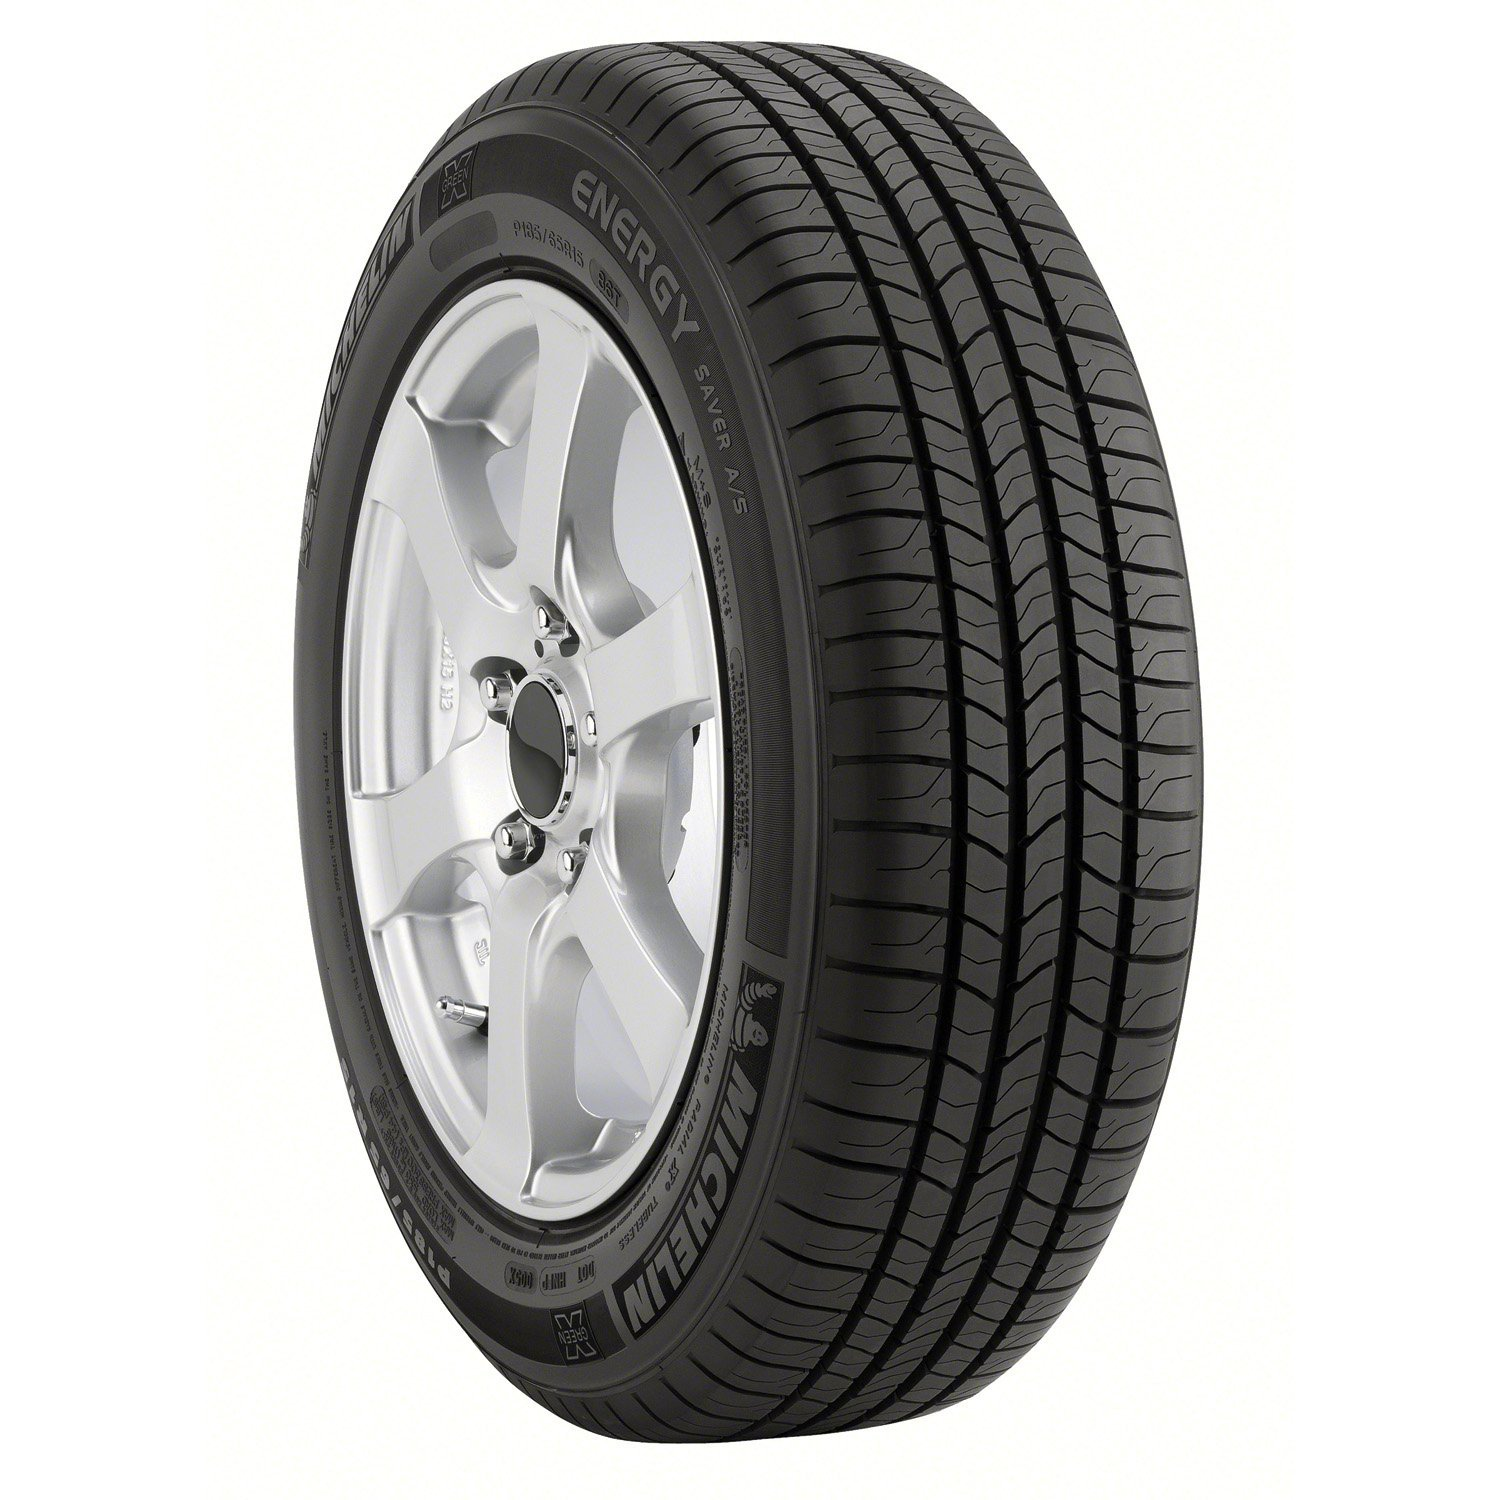 Michelin Energy Saver A/S All-Season Radial Tire - 195/65R15 91T